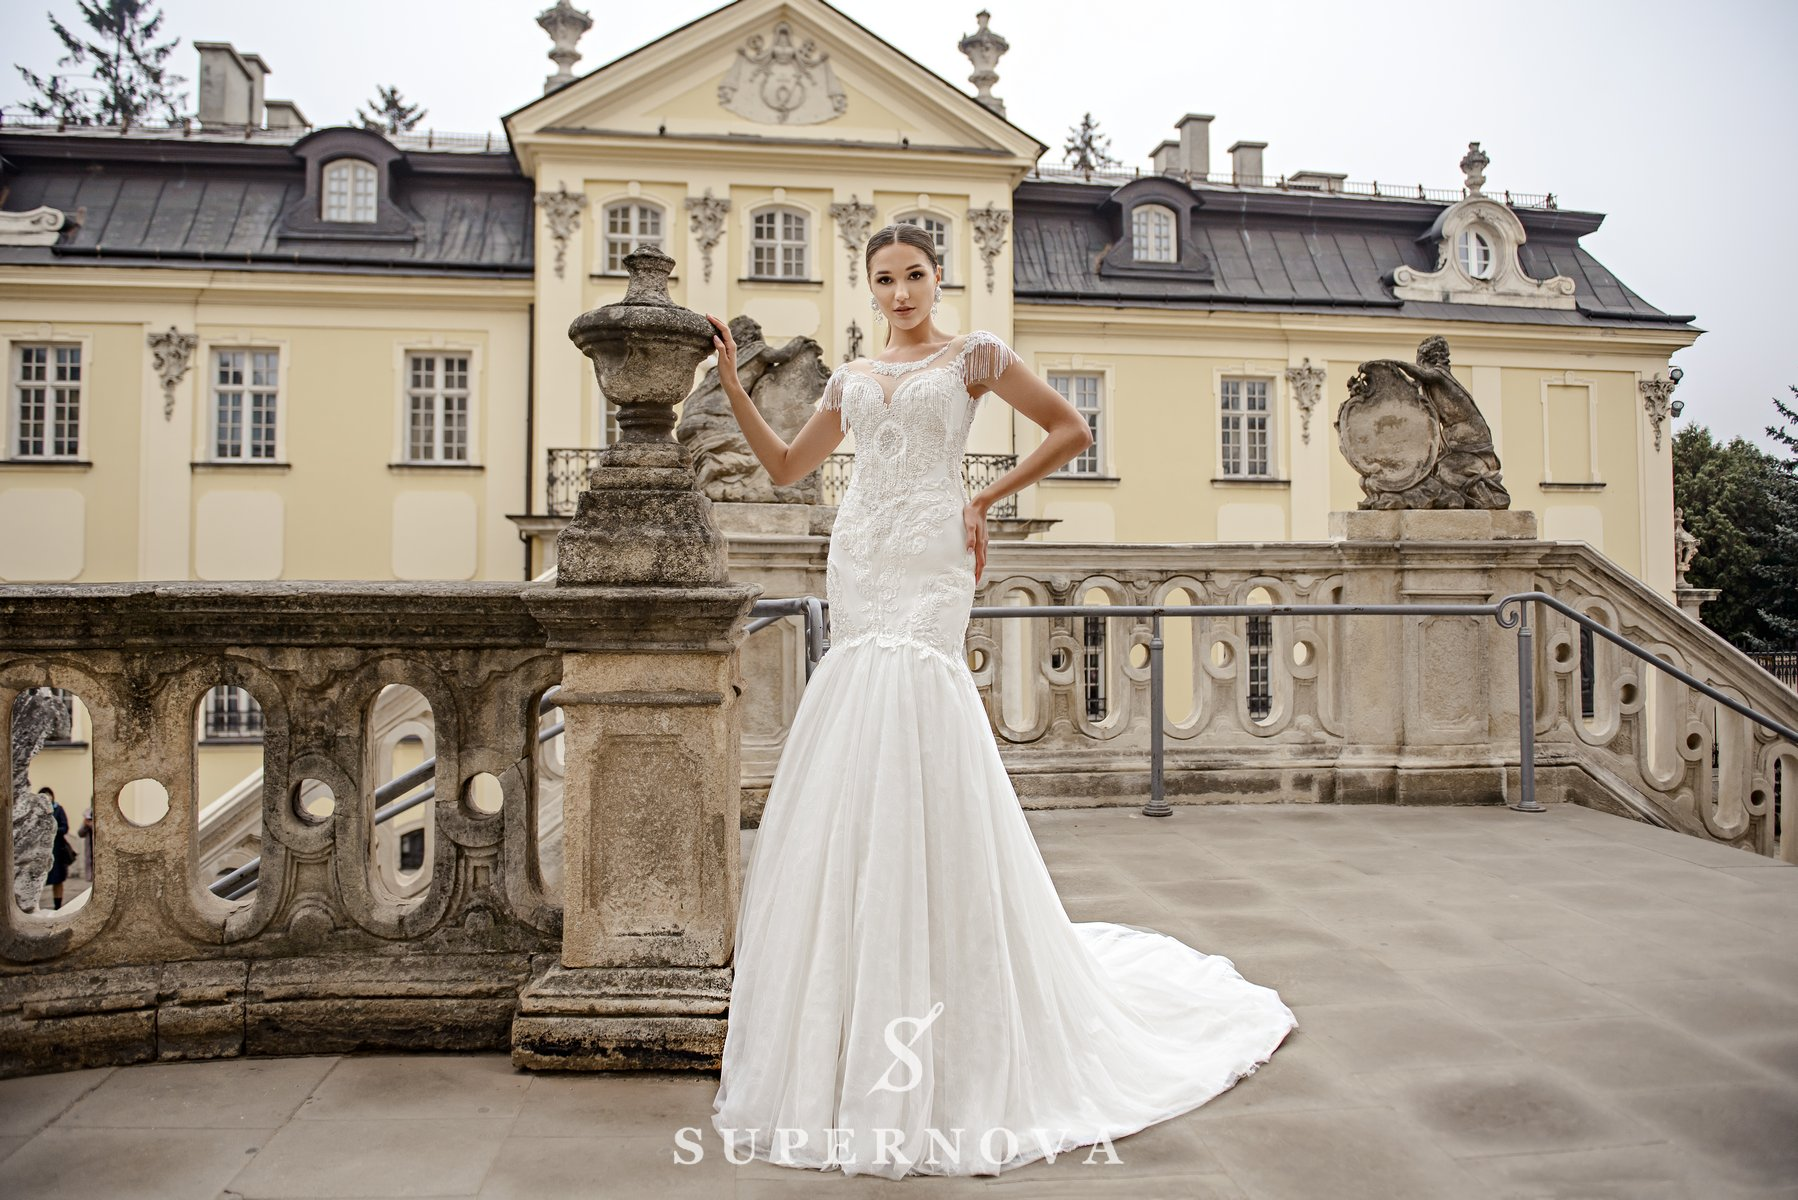 Ivory fishtail wedding dress embroidered with pearls on wholesale from SuperNova-1